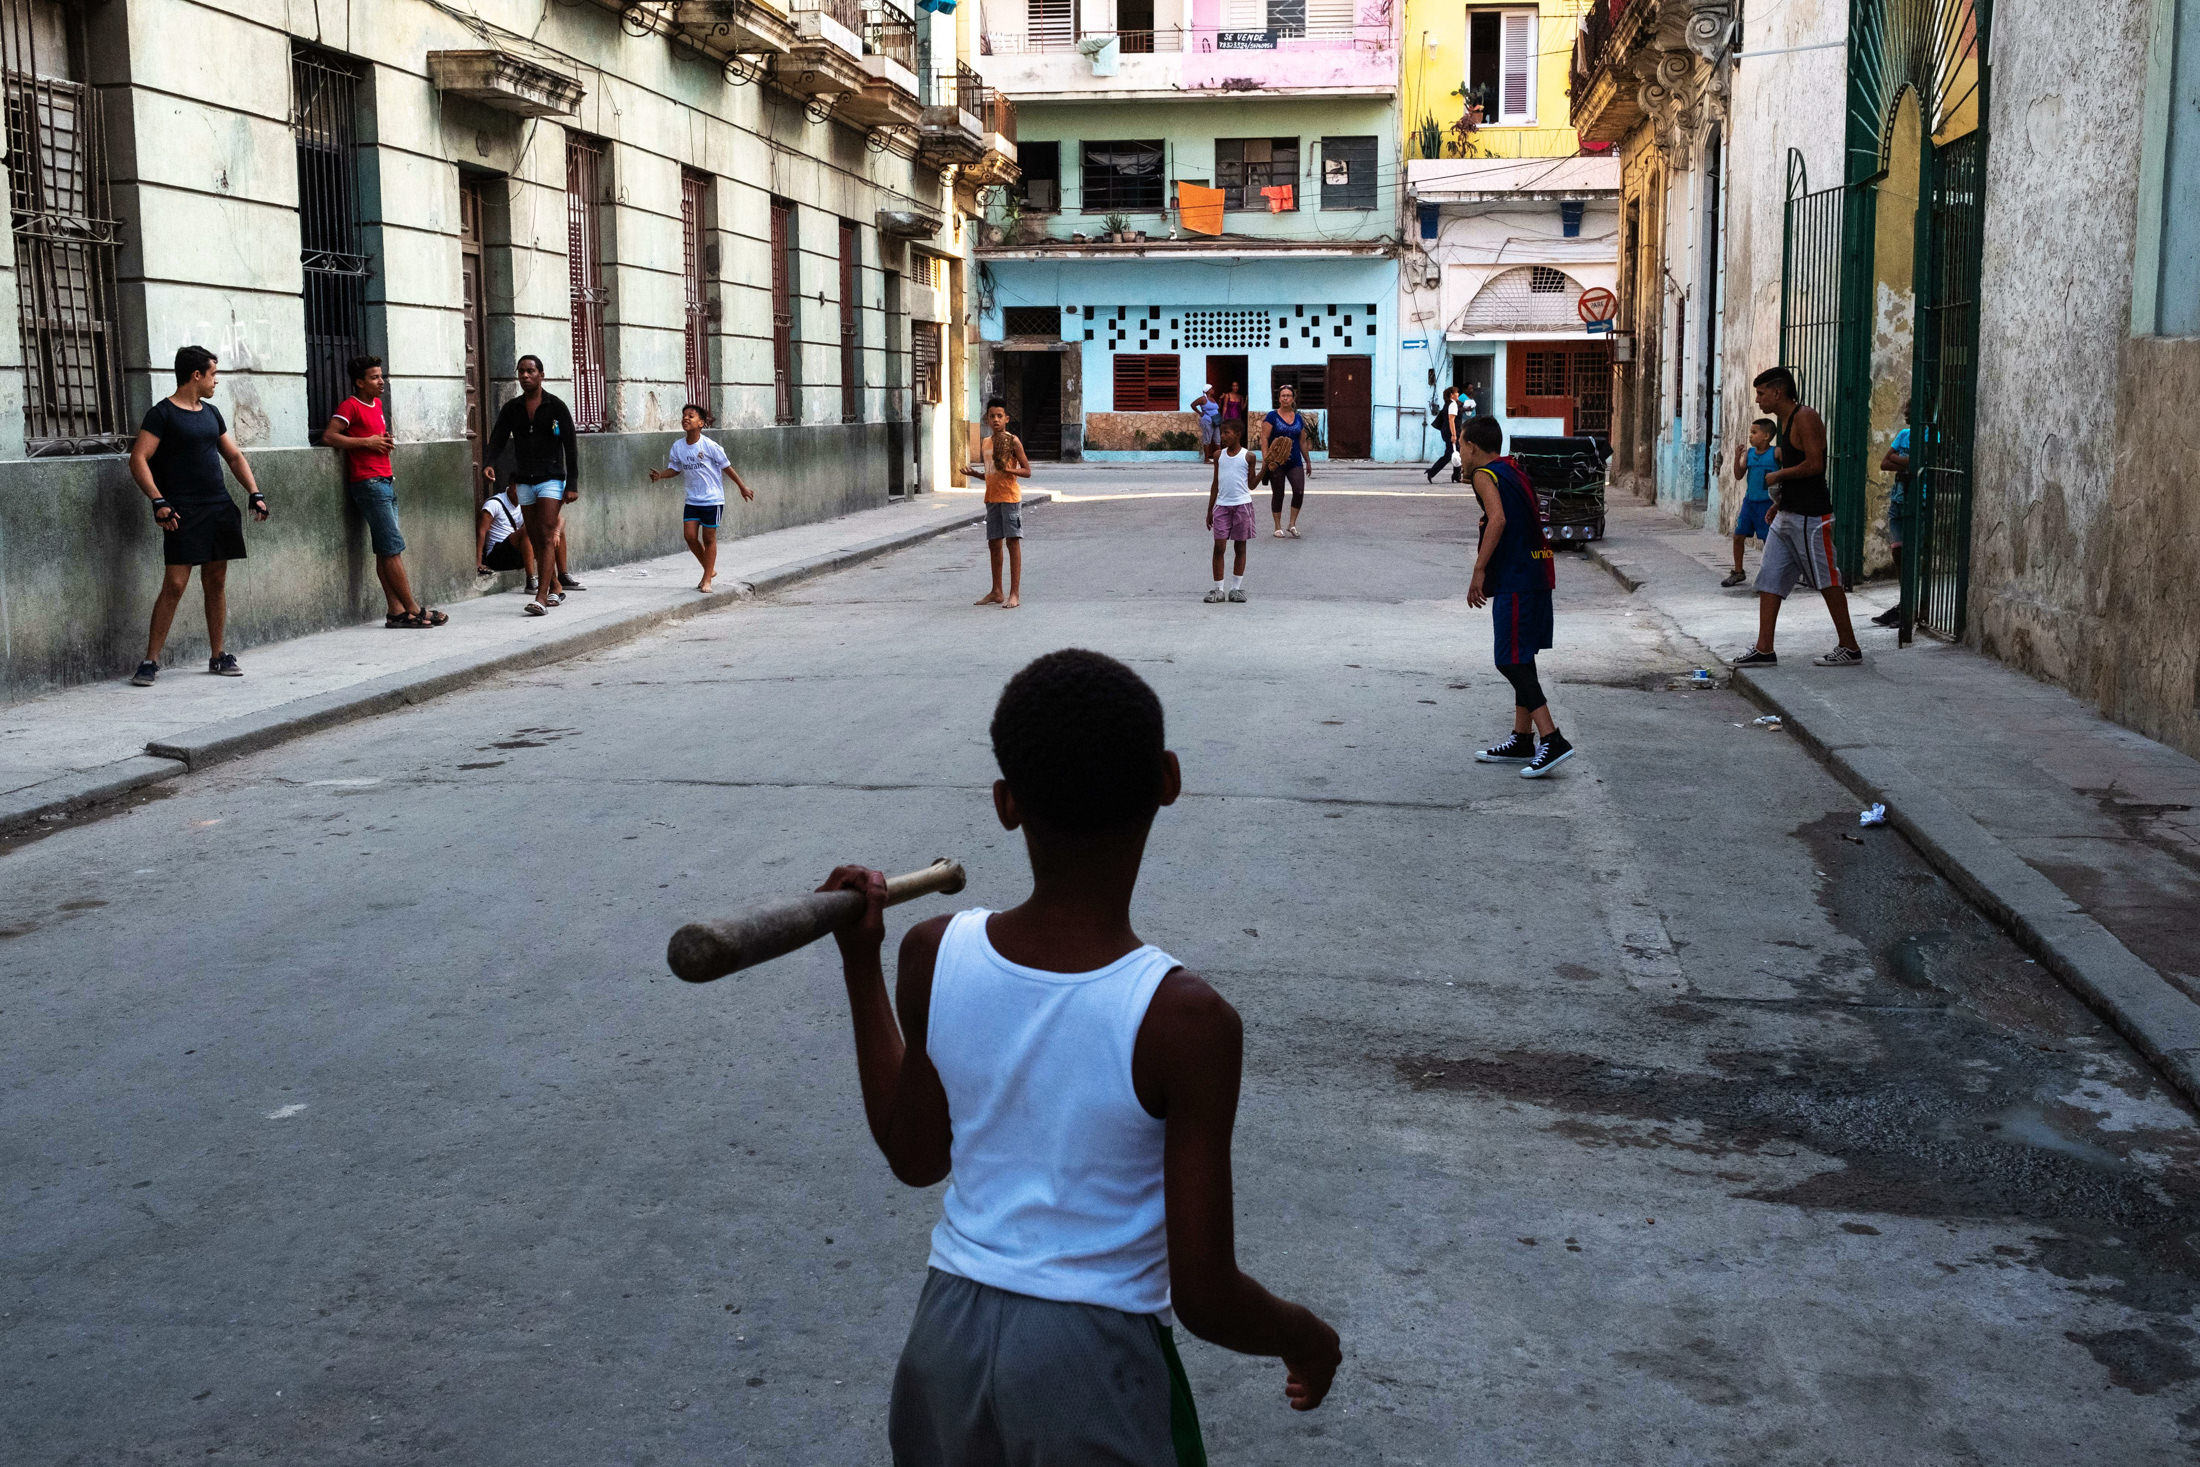 baseball game with the boys in Cuba